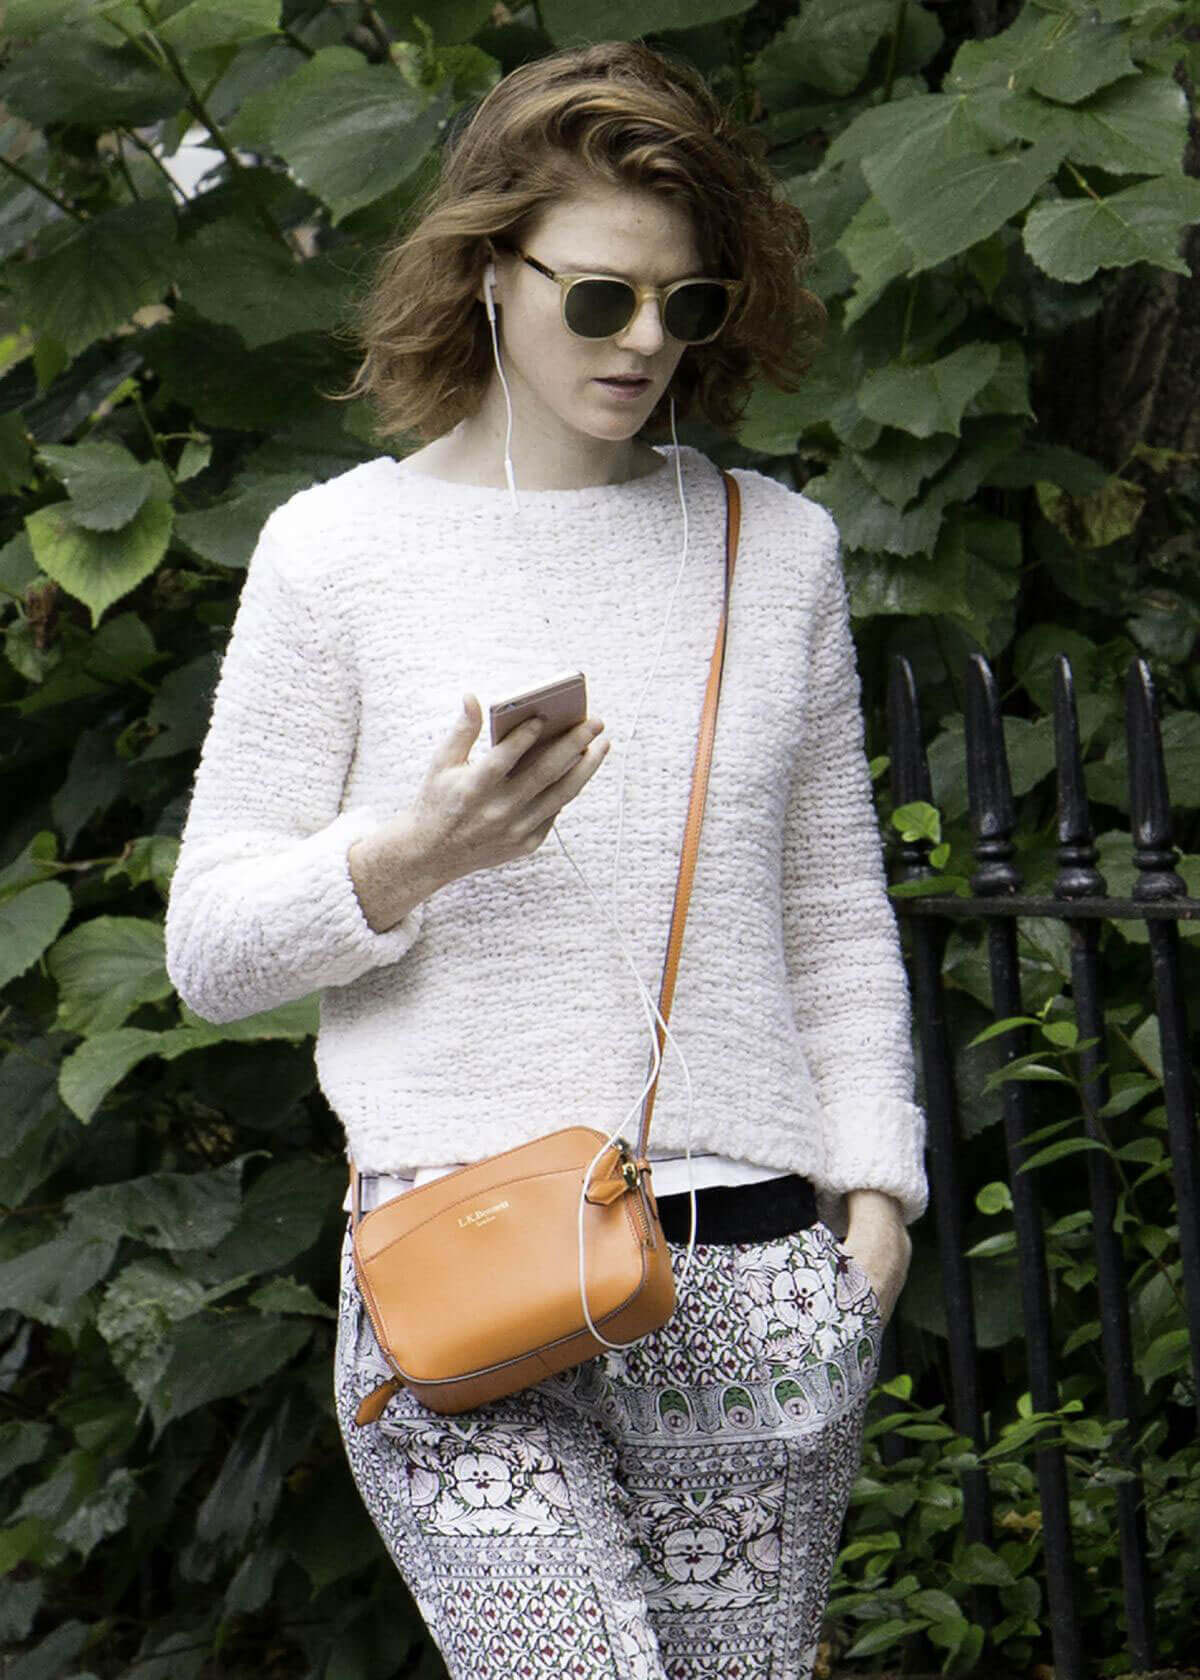 Rose Leslie Stills Out and About in London